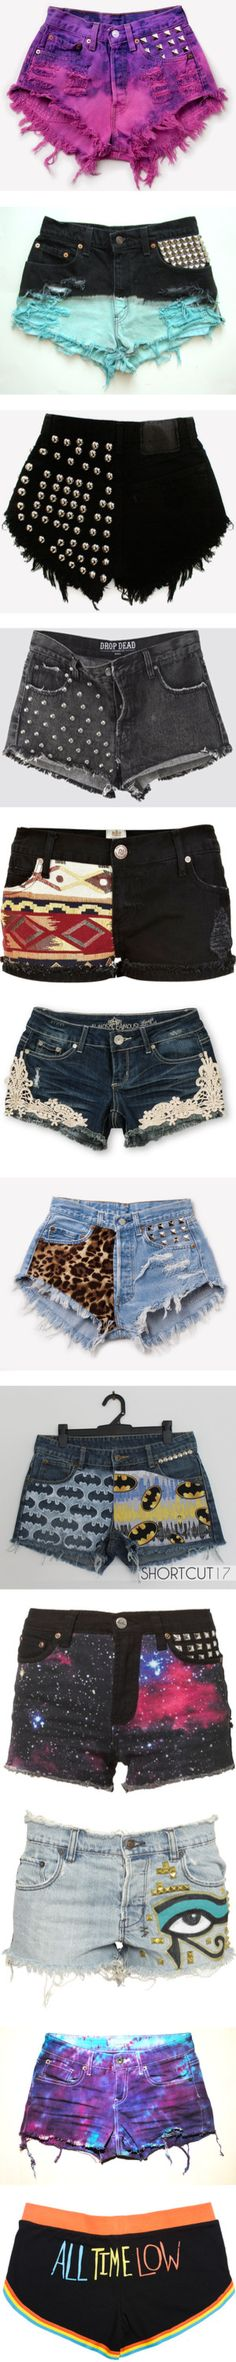 """shorts"" by nicolettestarzz ❤ liked on Polyvore"